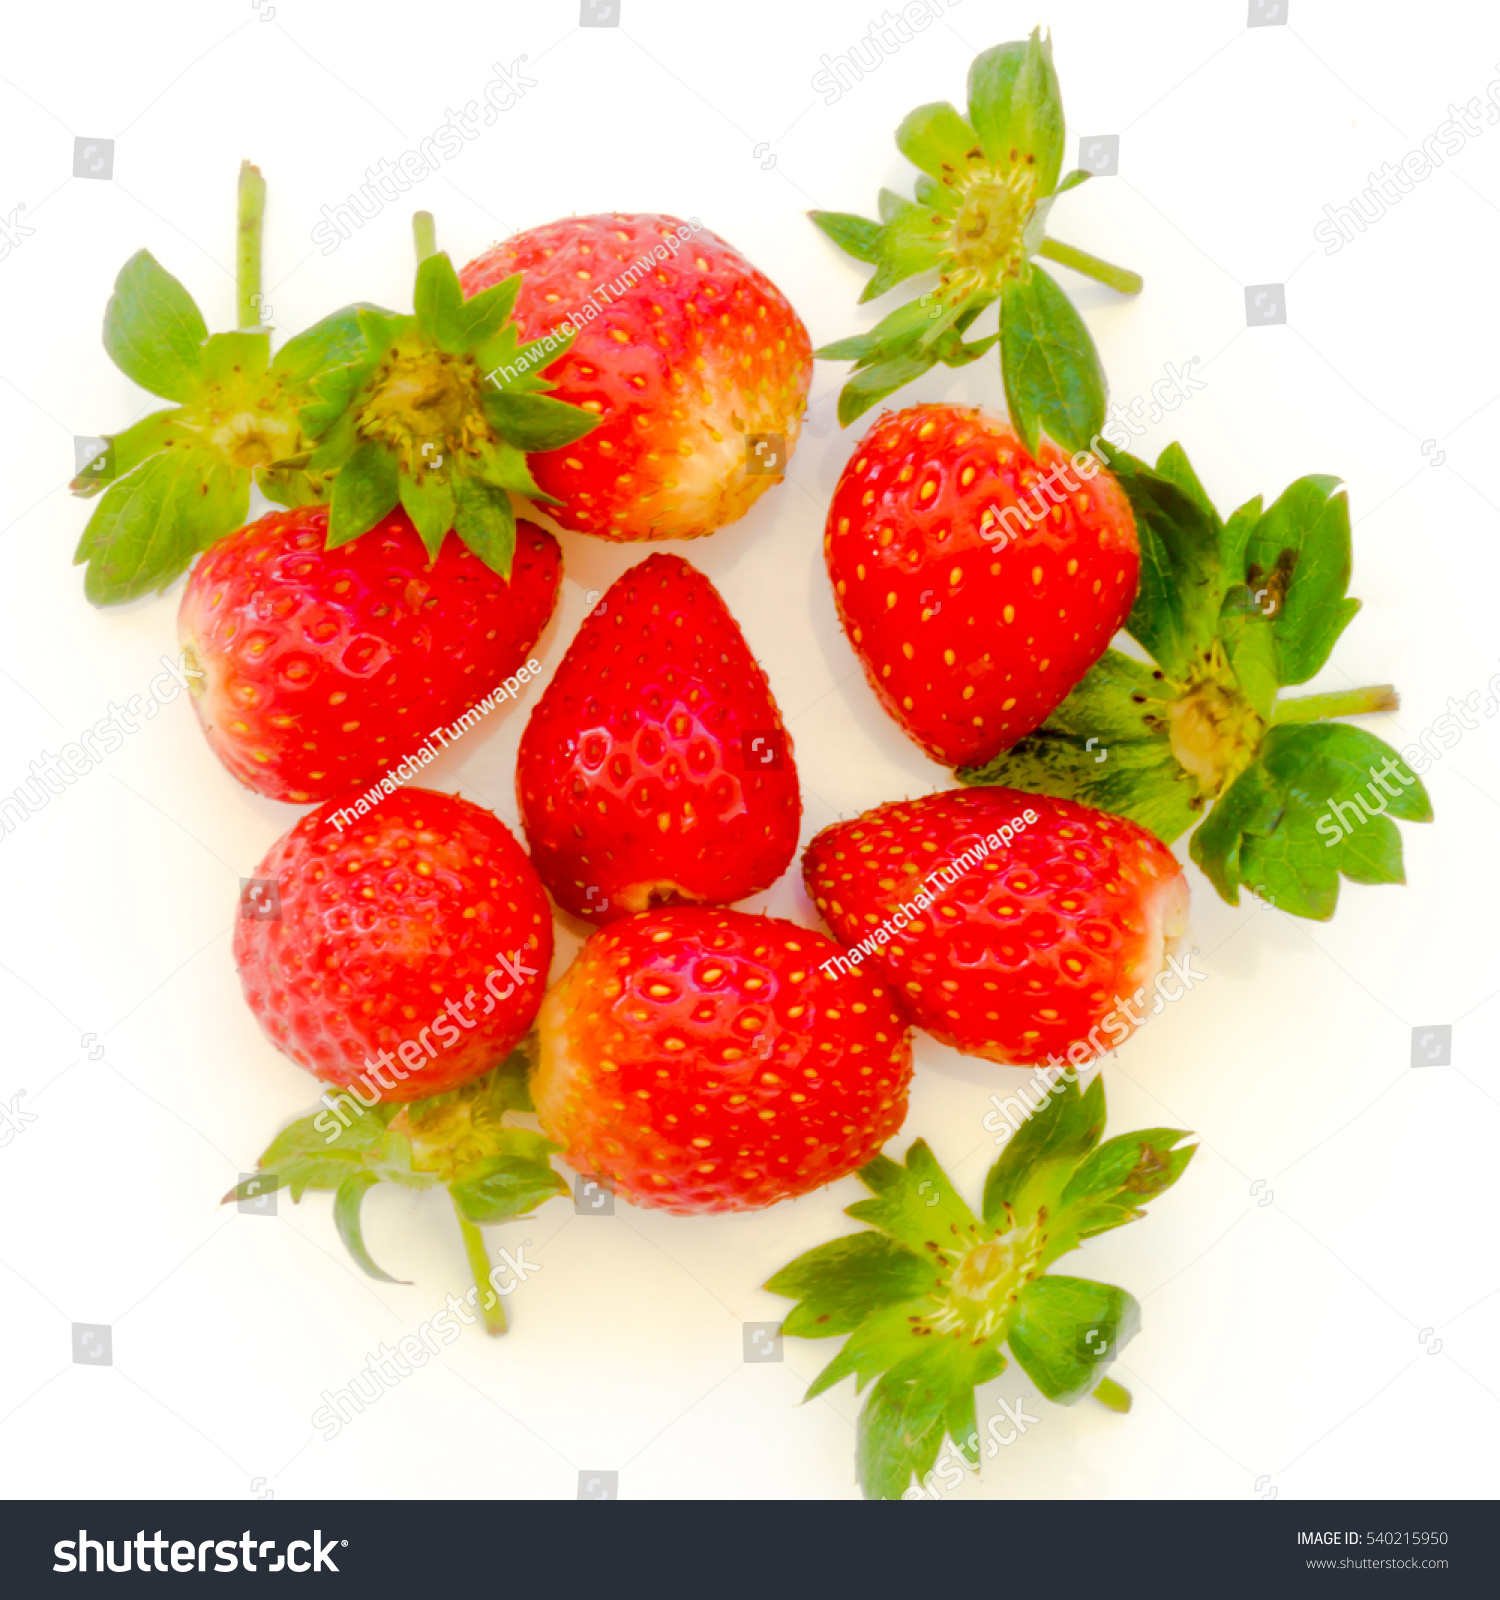 Strawberries Close Up On White Background Stock Photo ...